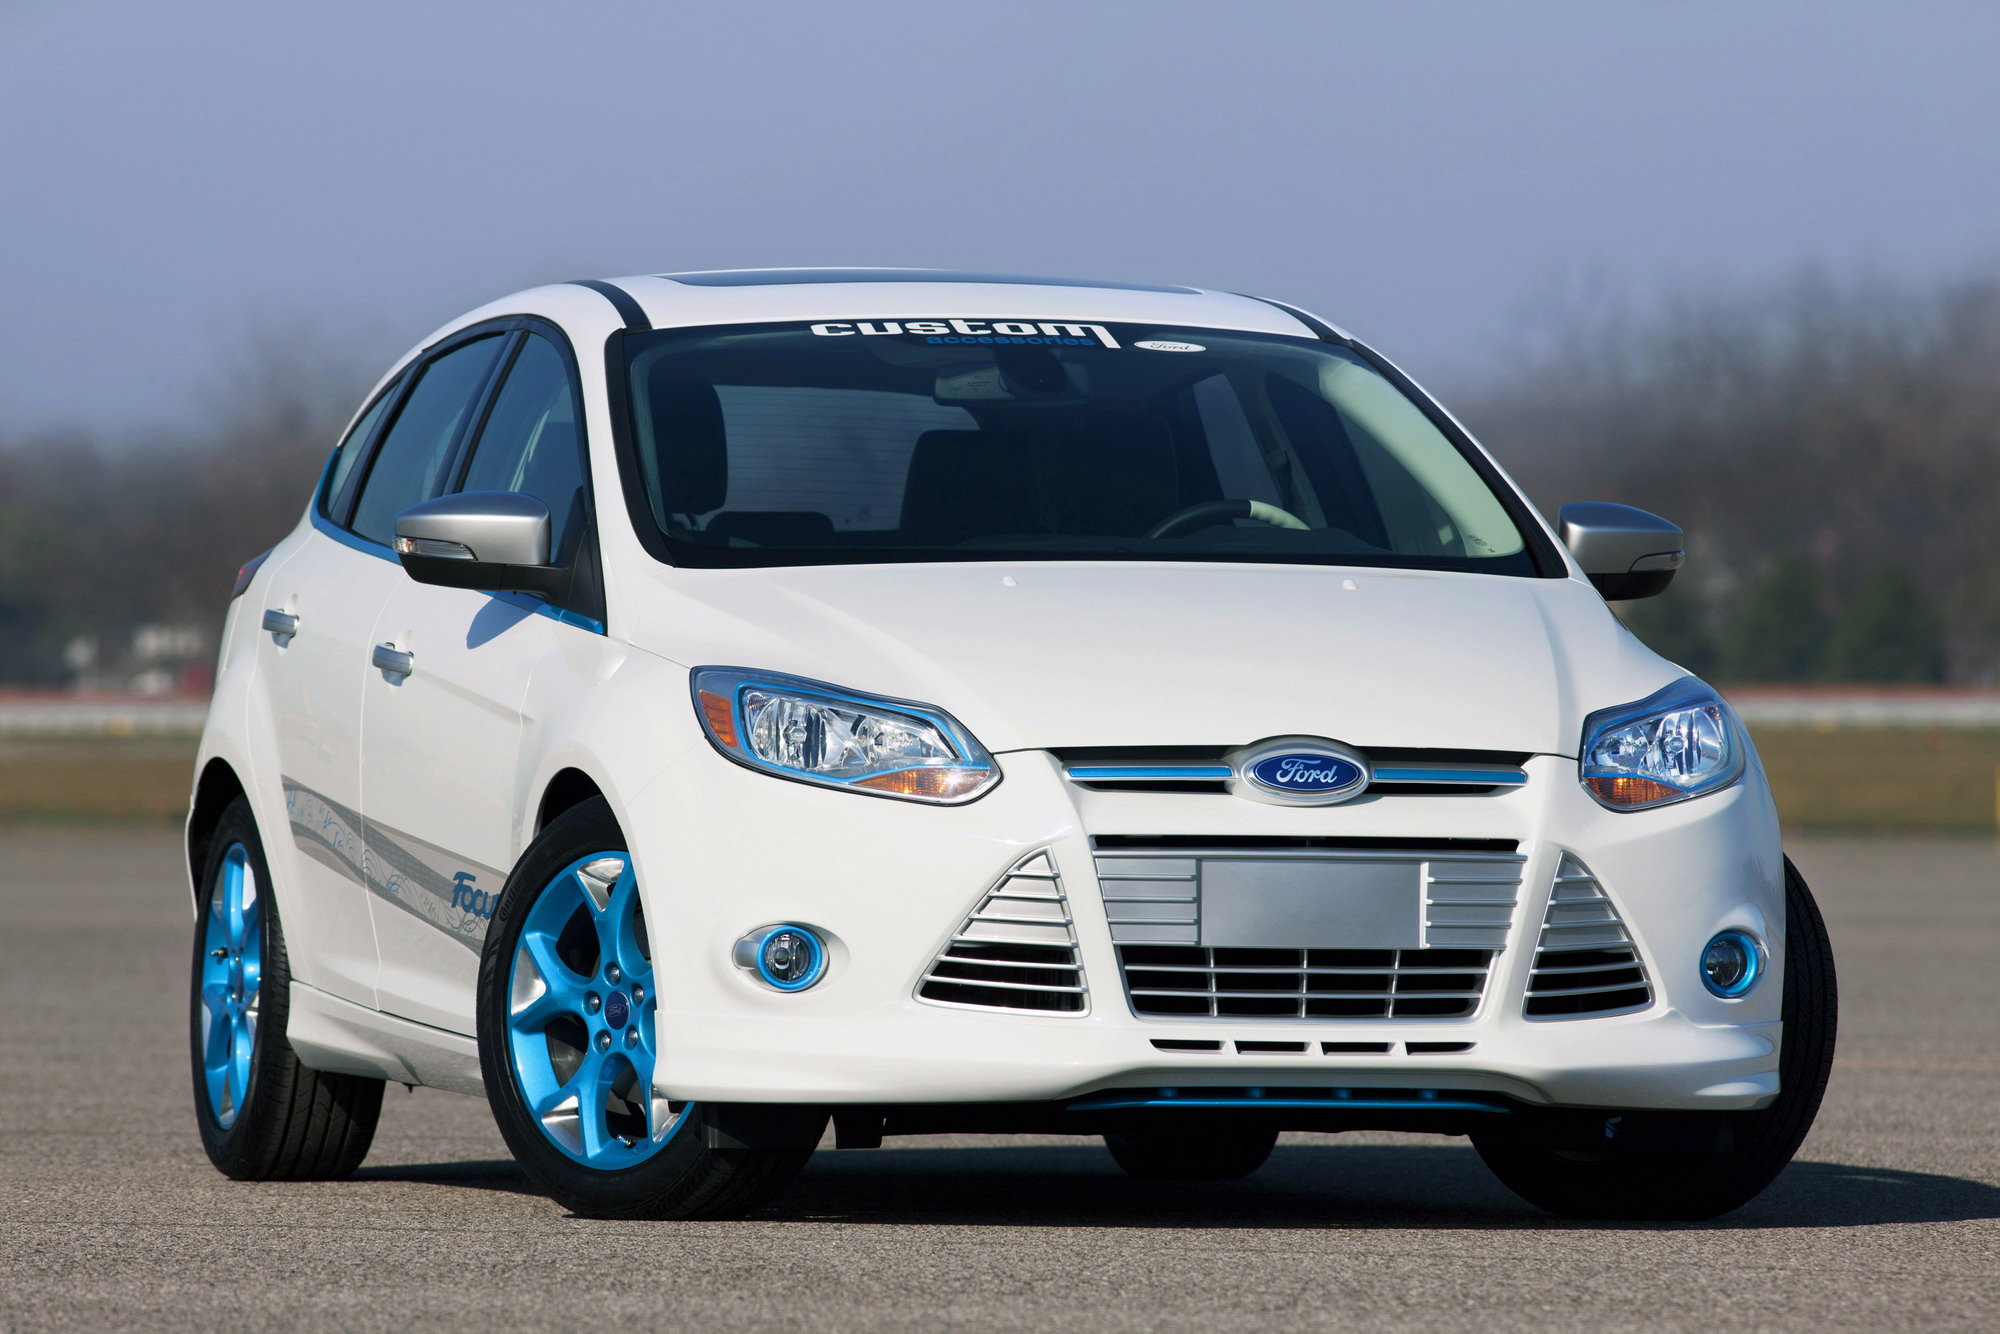 Ford Armed Themselves With A Host Of Fiestas At The 2010 SEMA Auto Show But Los Angeles Will See Mass Focus Models Enter Their